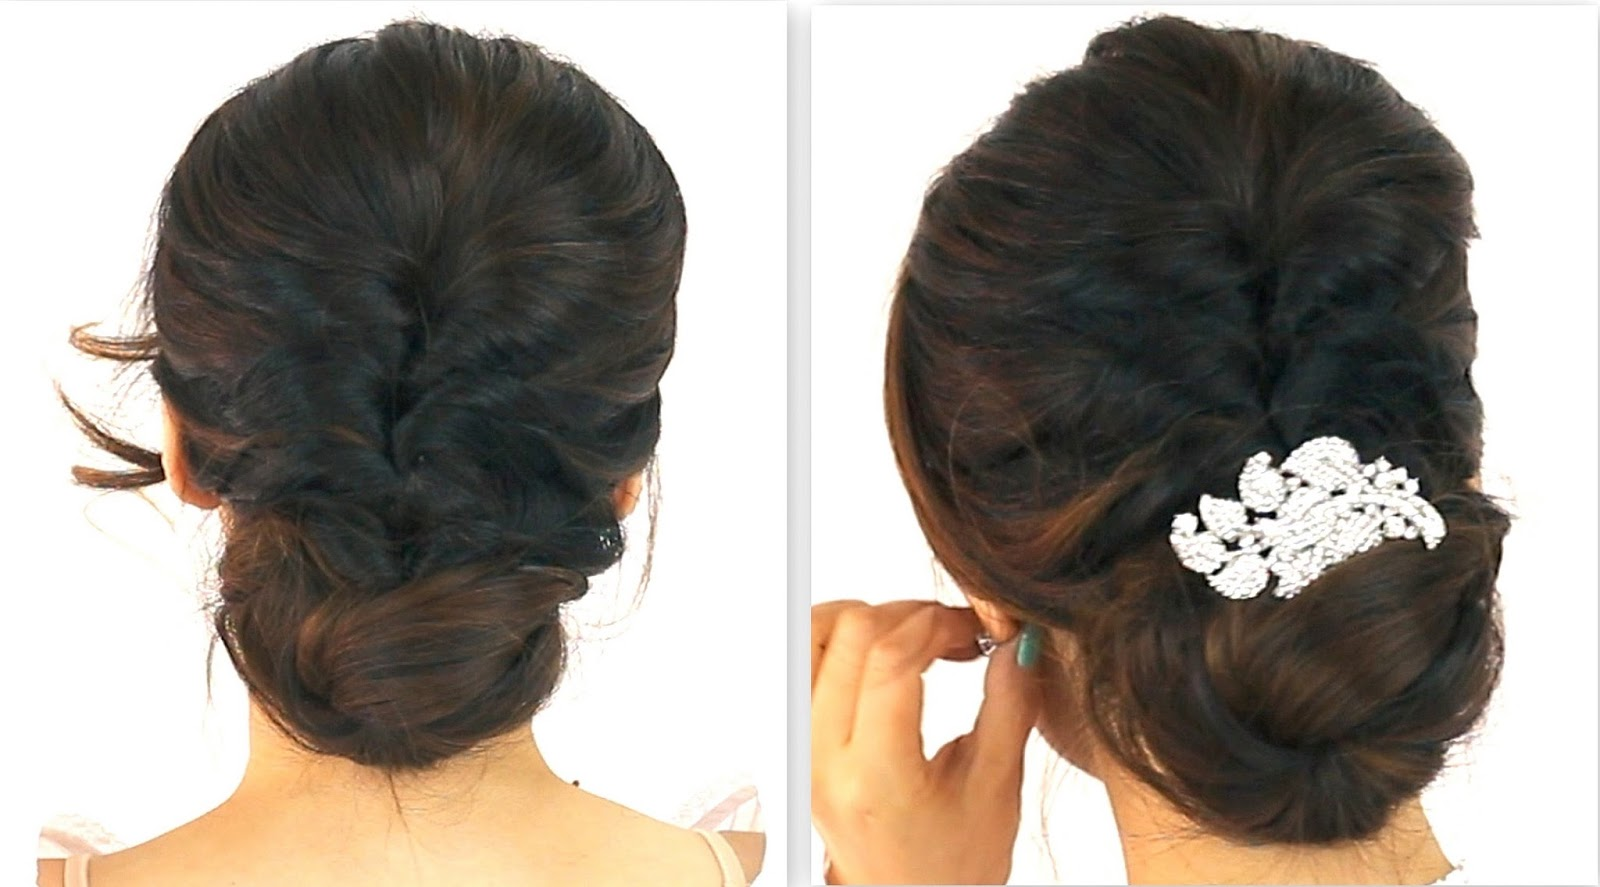 10 gorgeous hair styles a christian bride can opt for - part 2